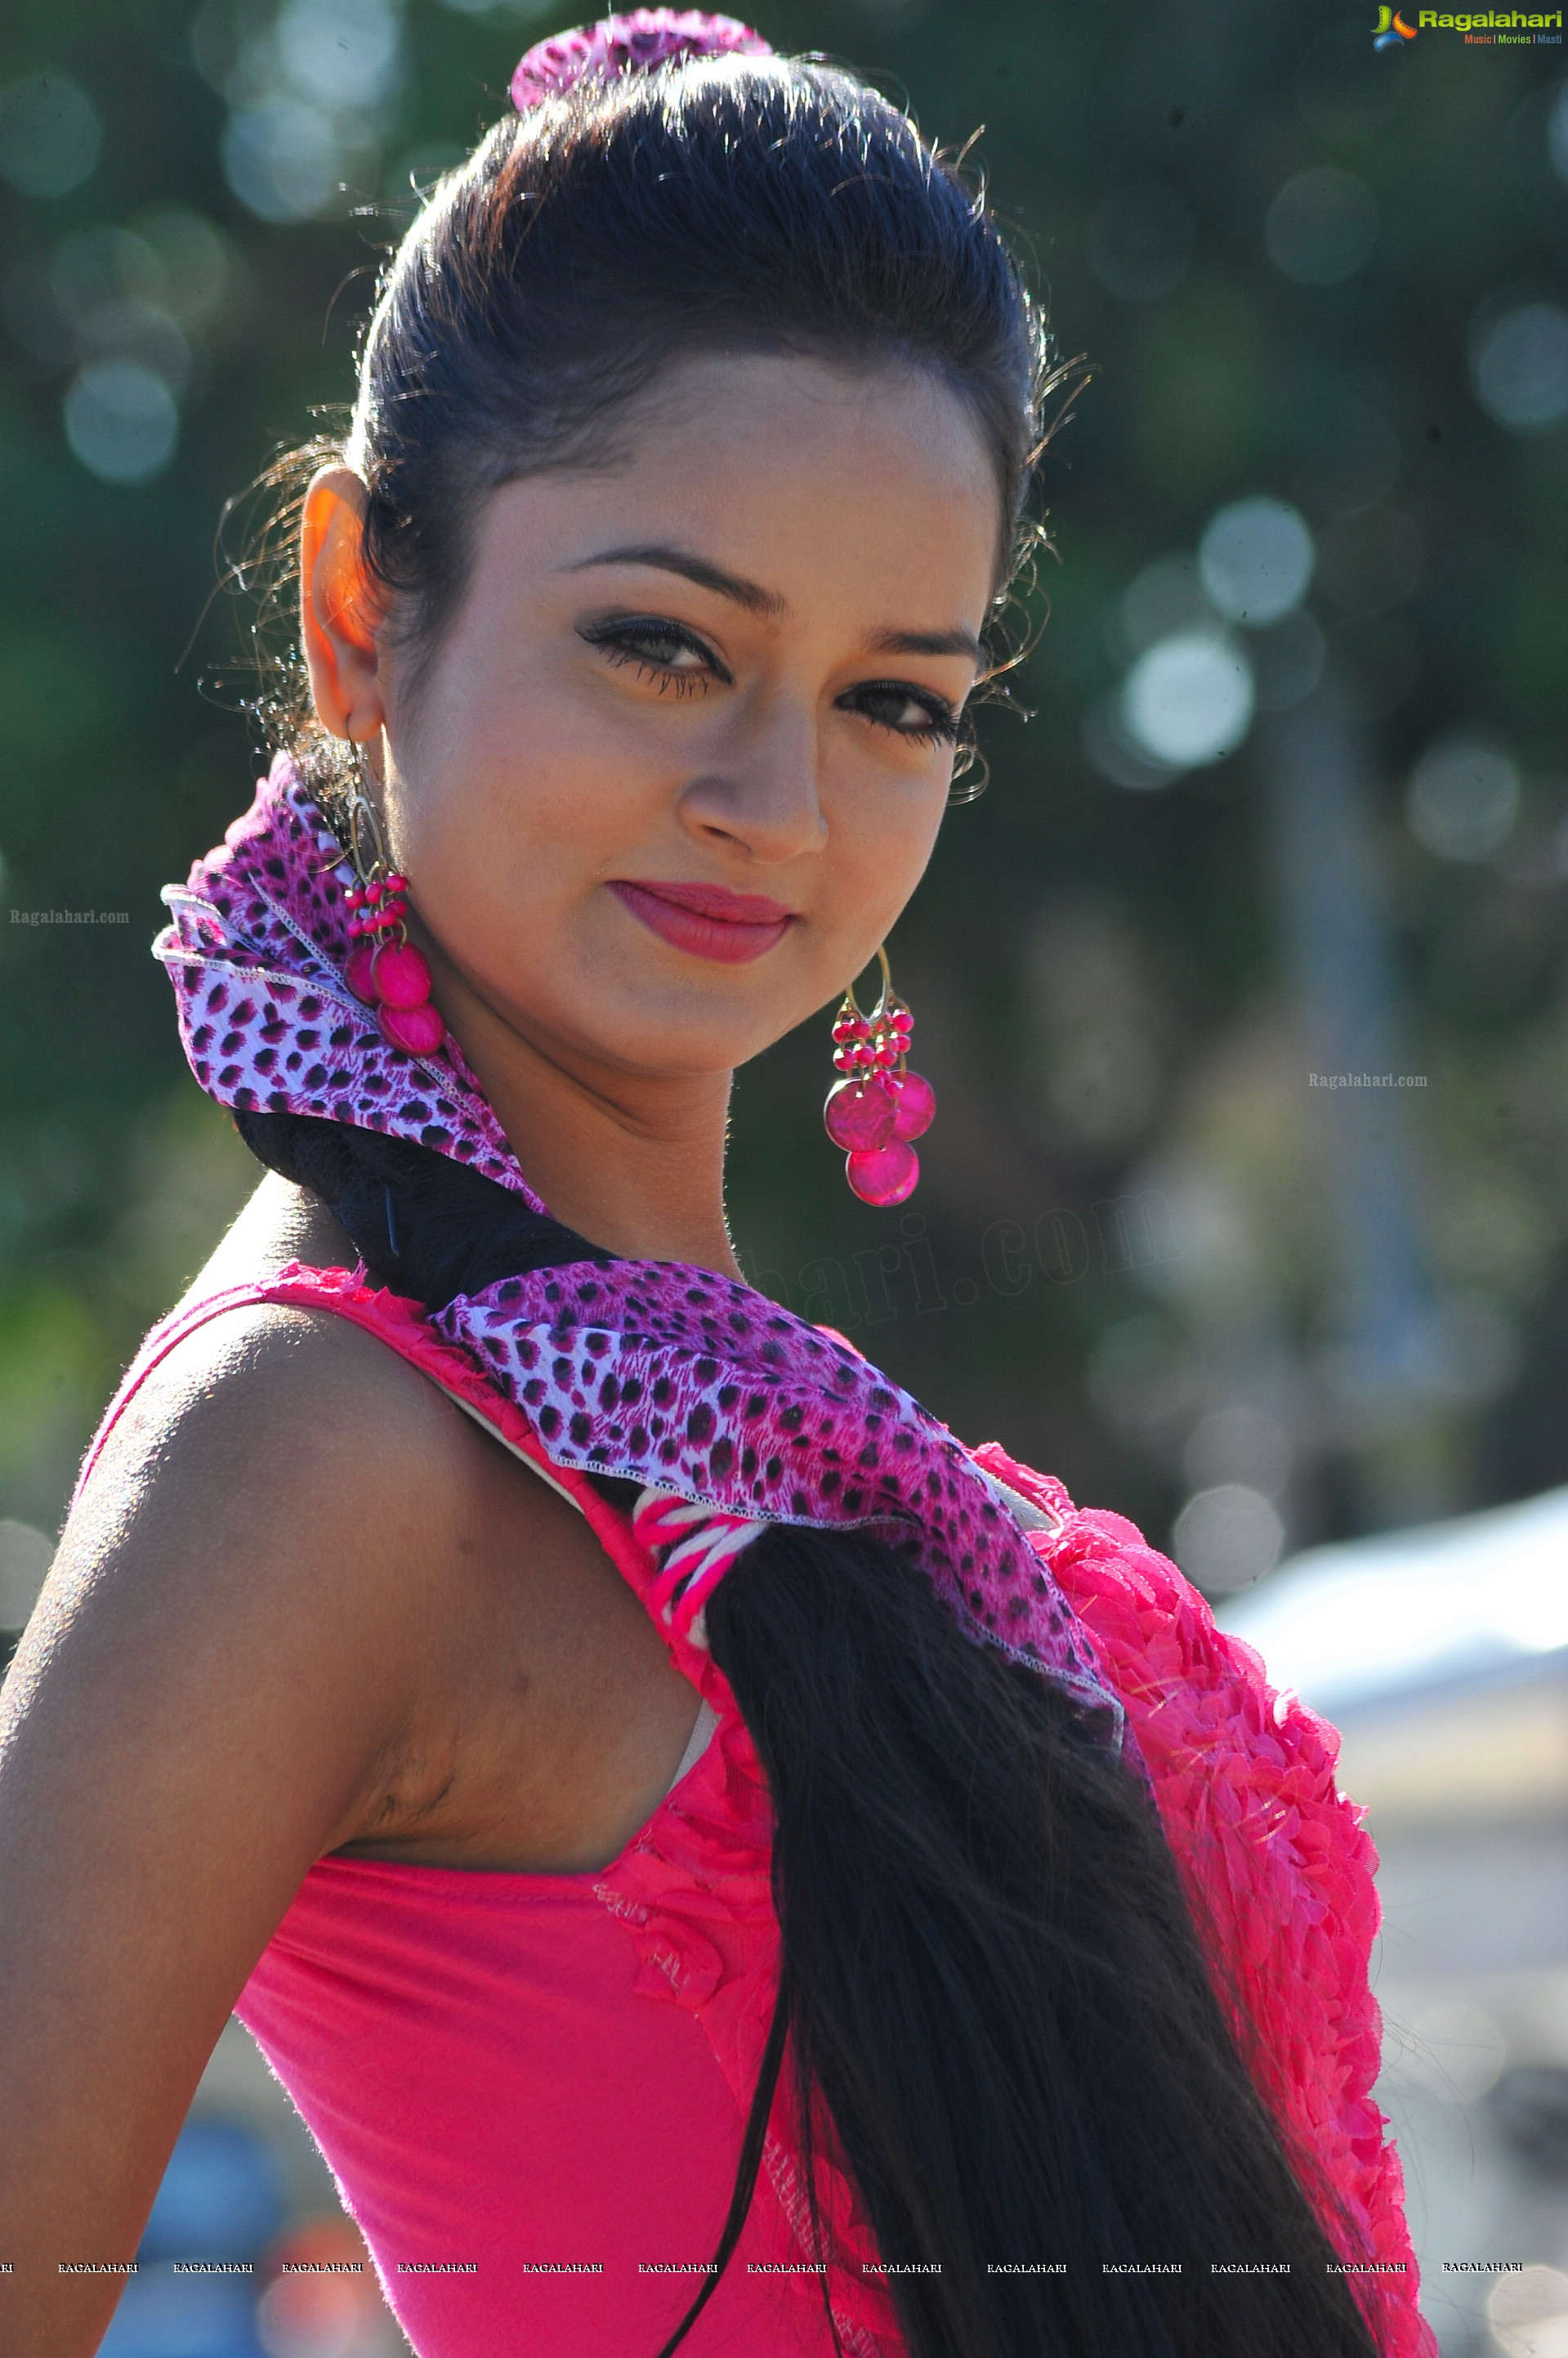 telugu actress hd photos com | bedwalls.co